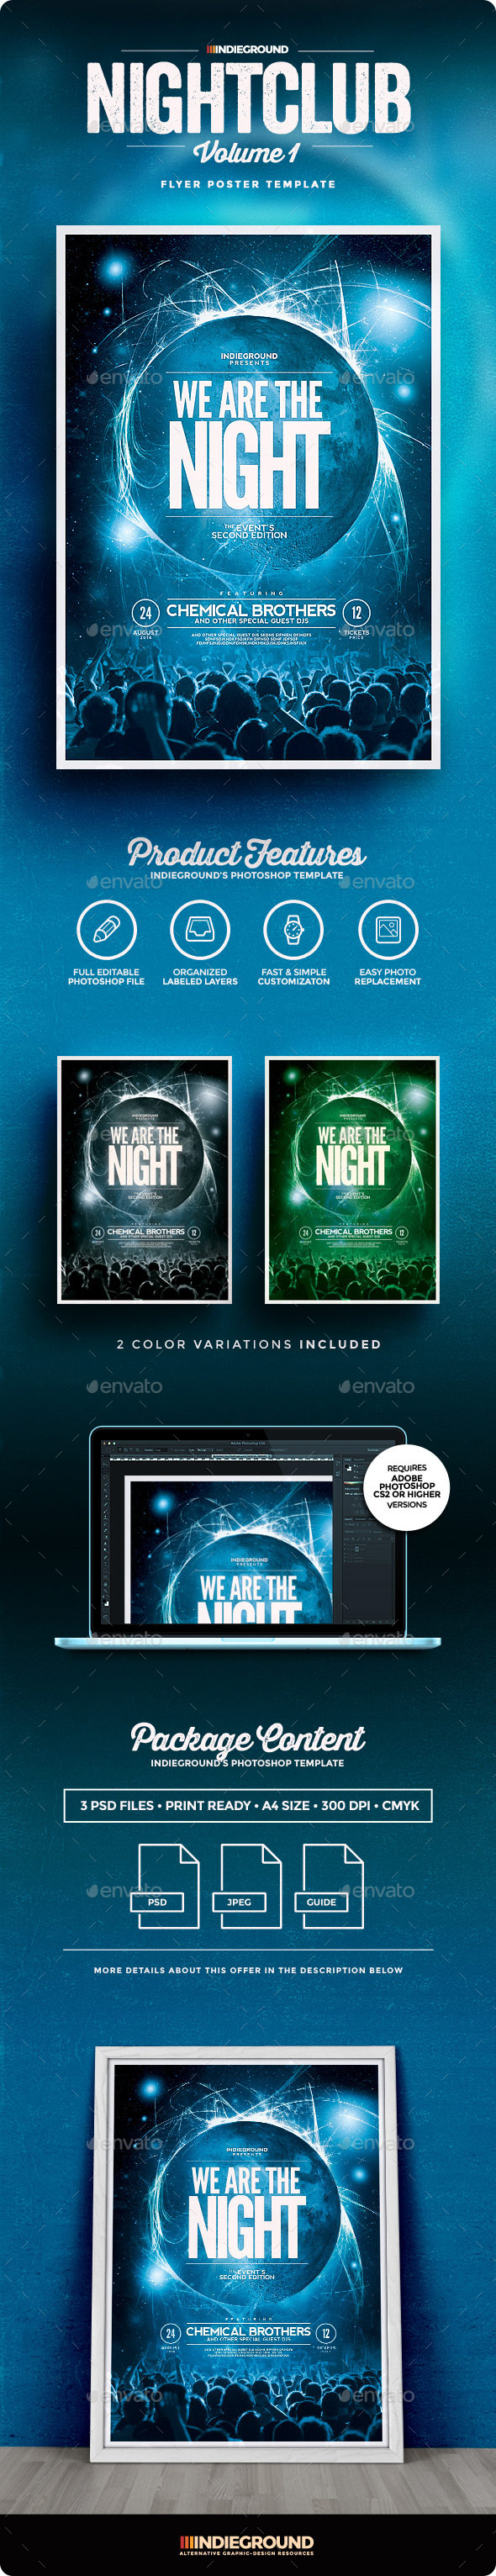 Nightclub Flyer/Poster - Clubs & Parties Events